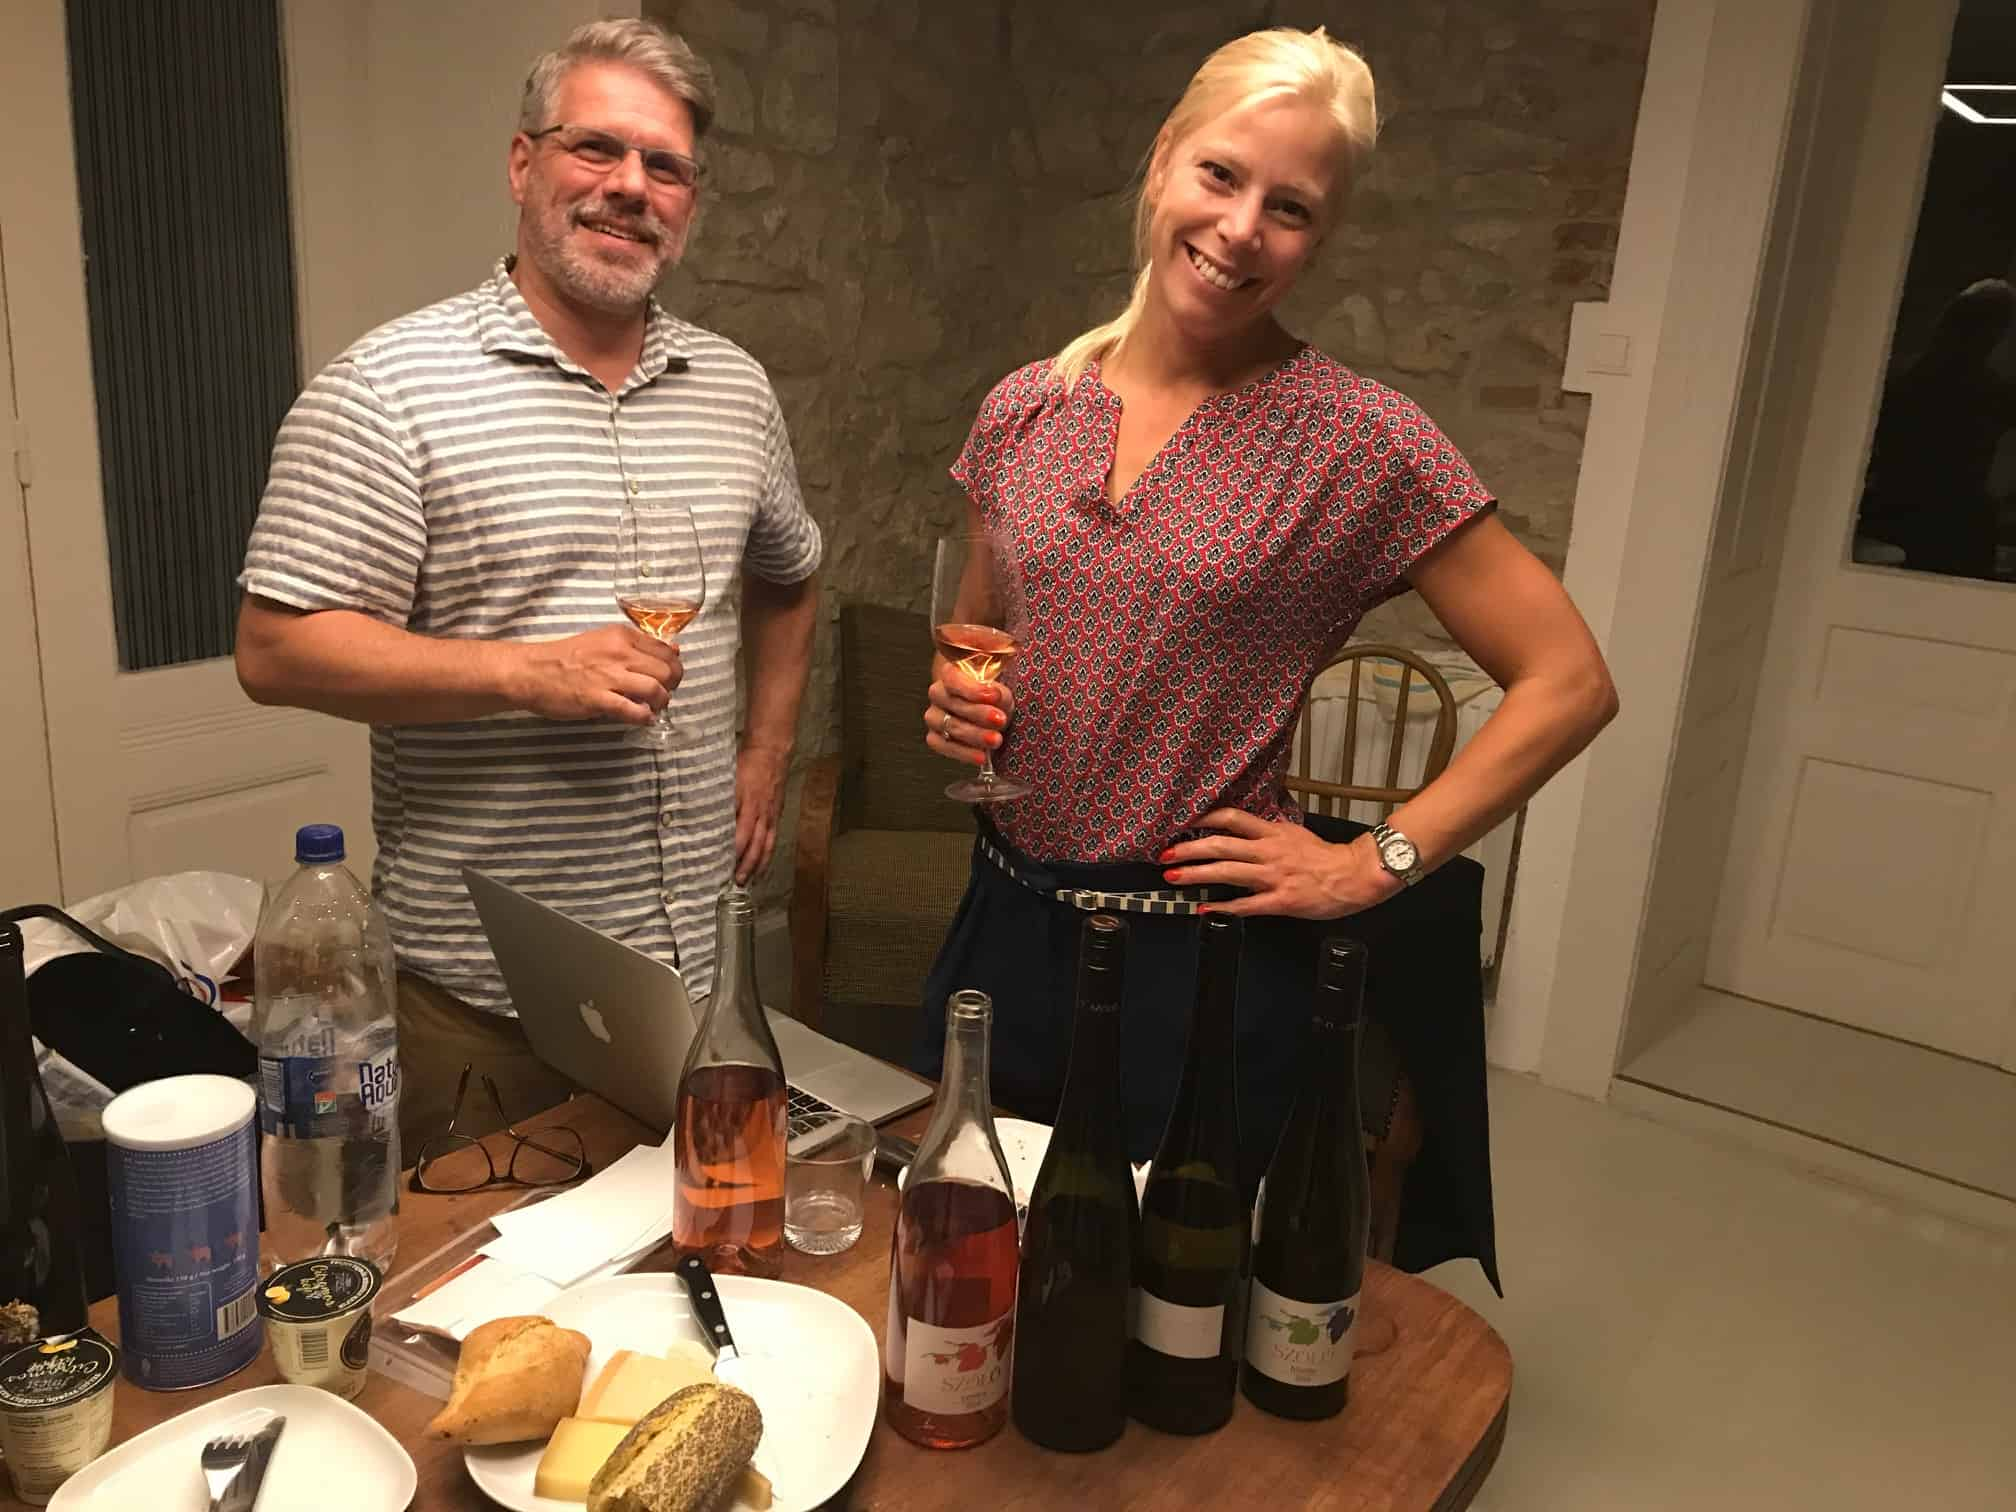 Tasting furmint with the owner of SZÓLÓ wine who also is involved in the two latest Hungry